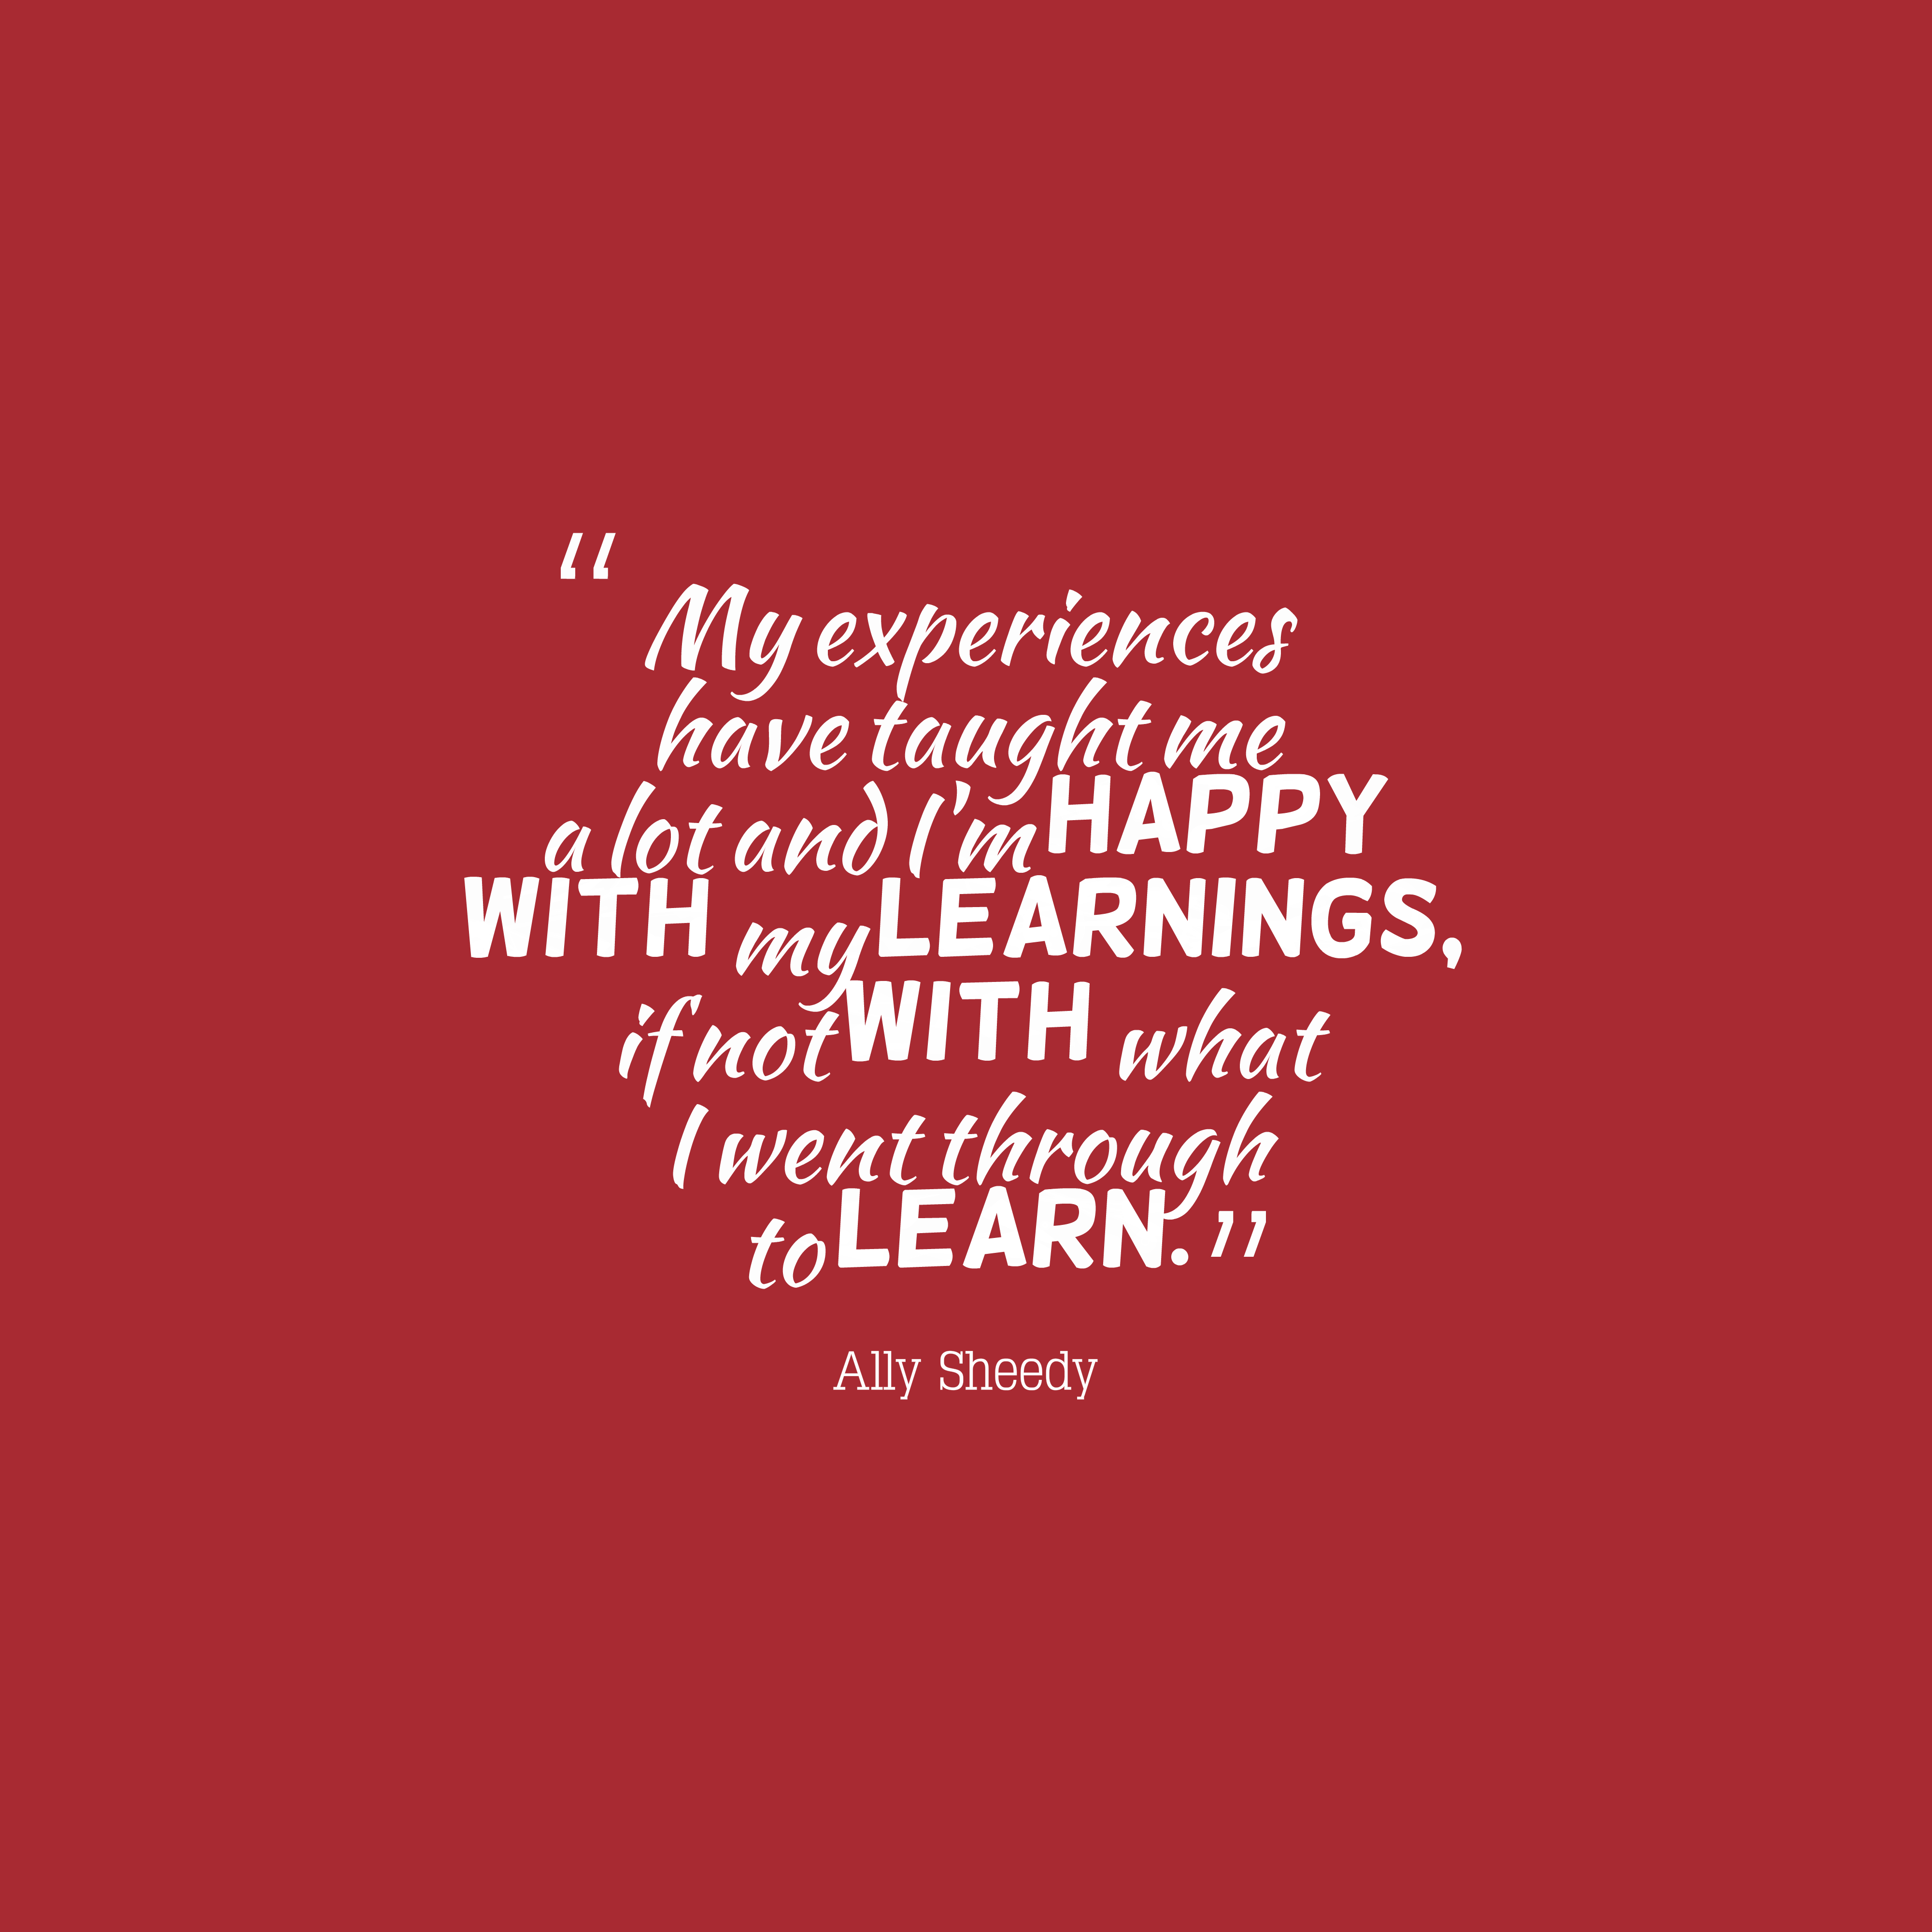 Ally Sheedy Quote About Experience